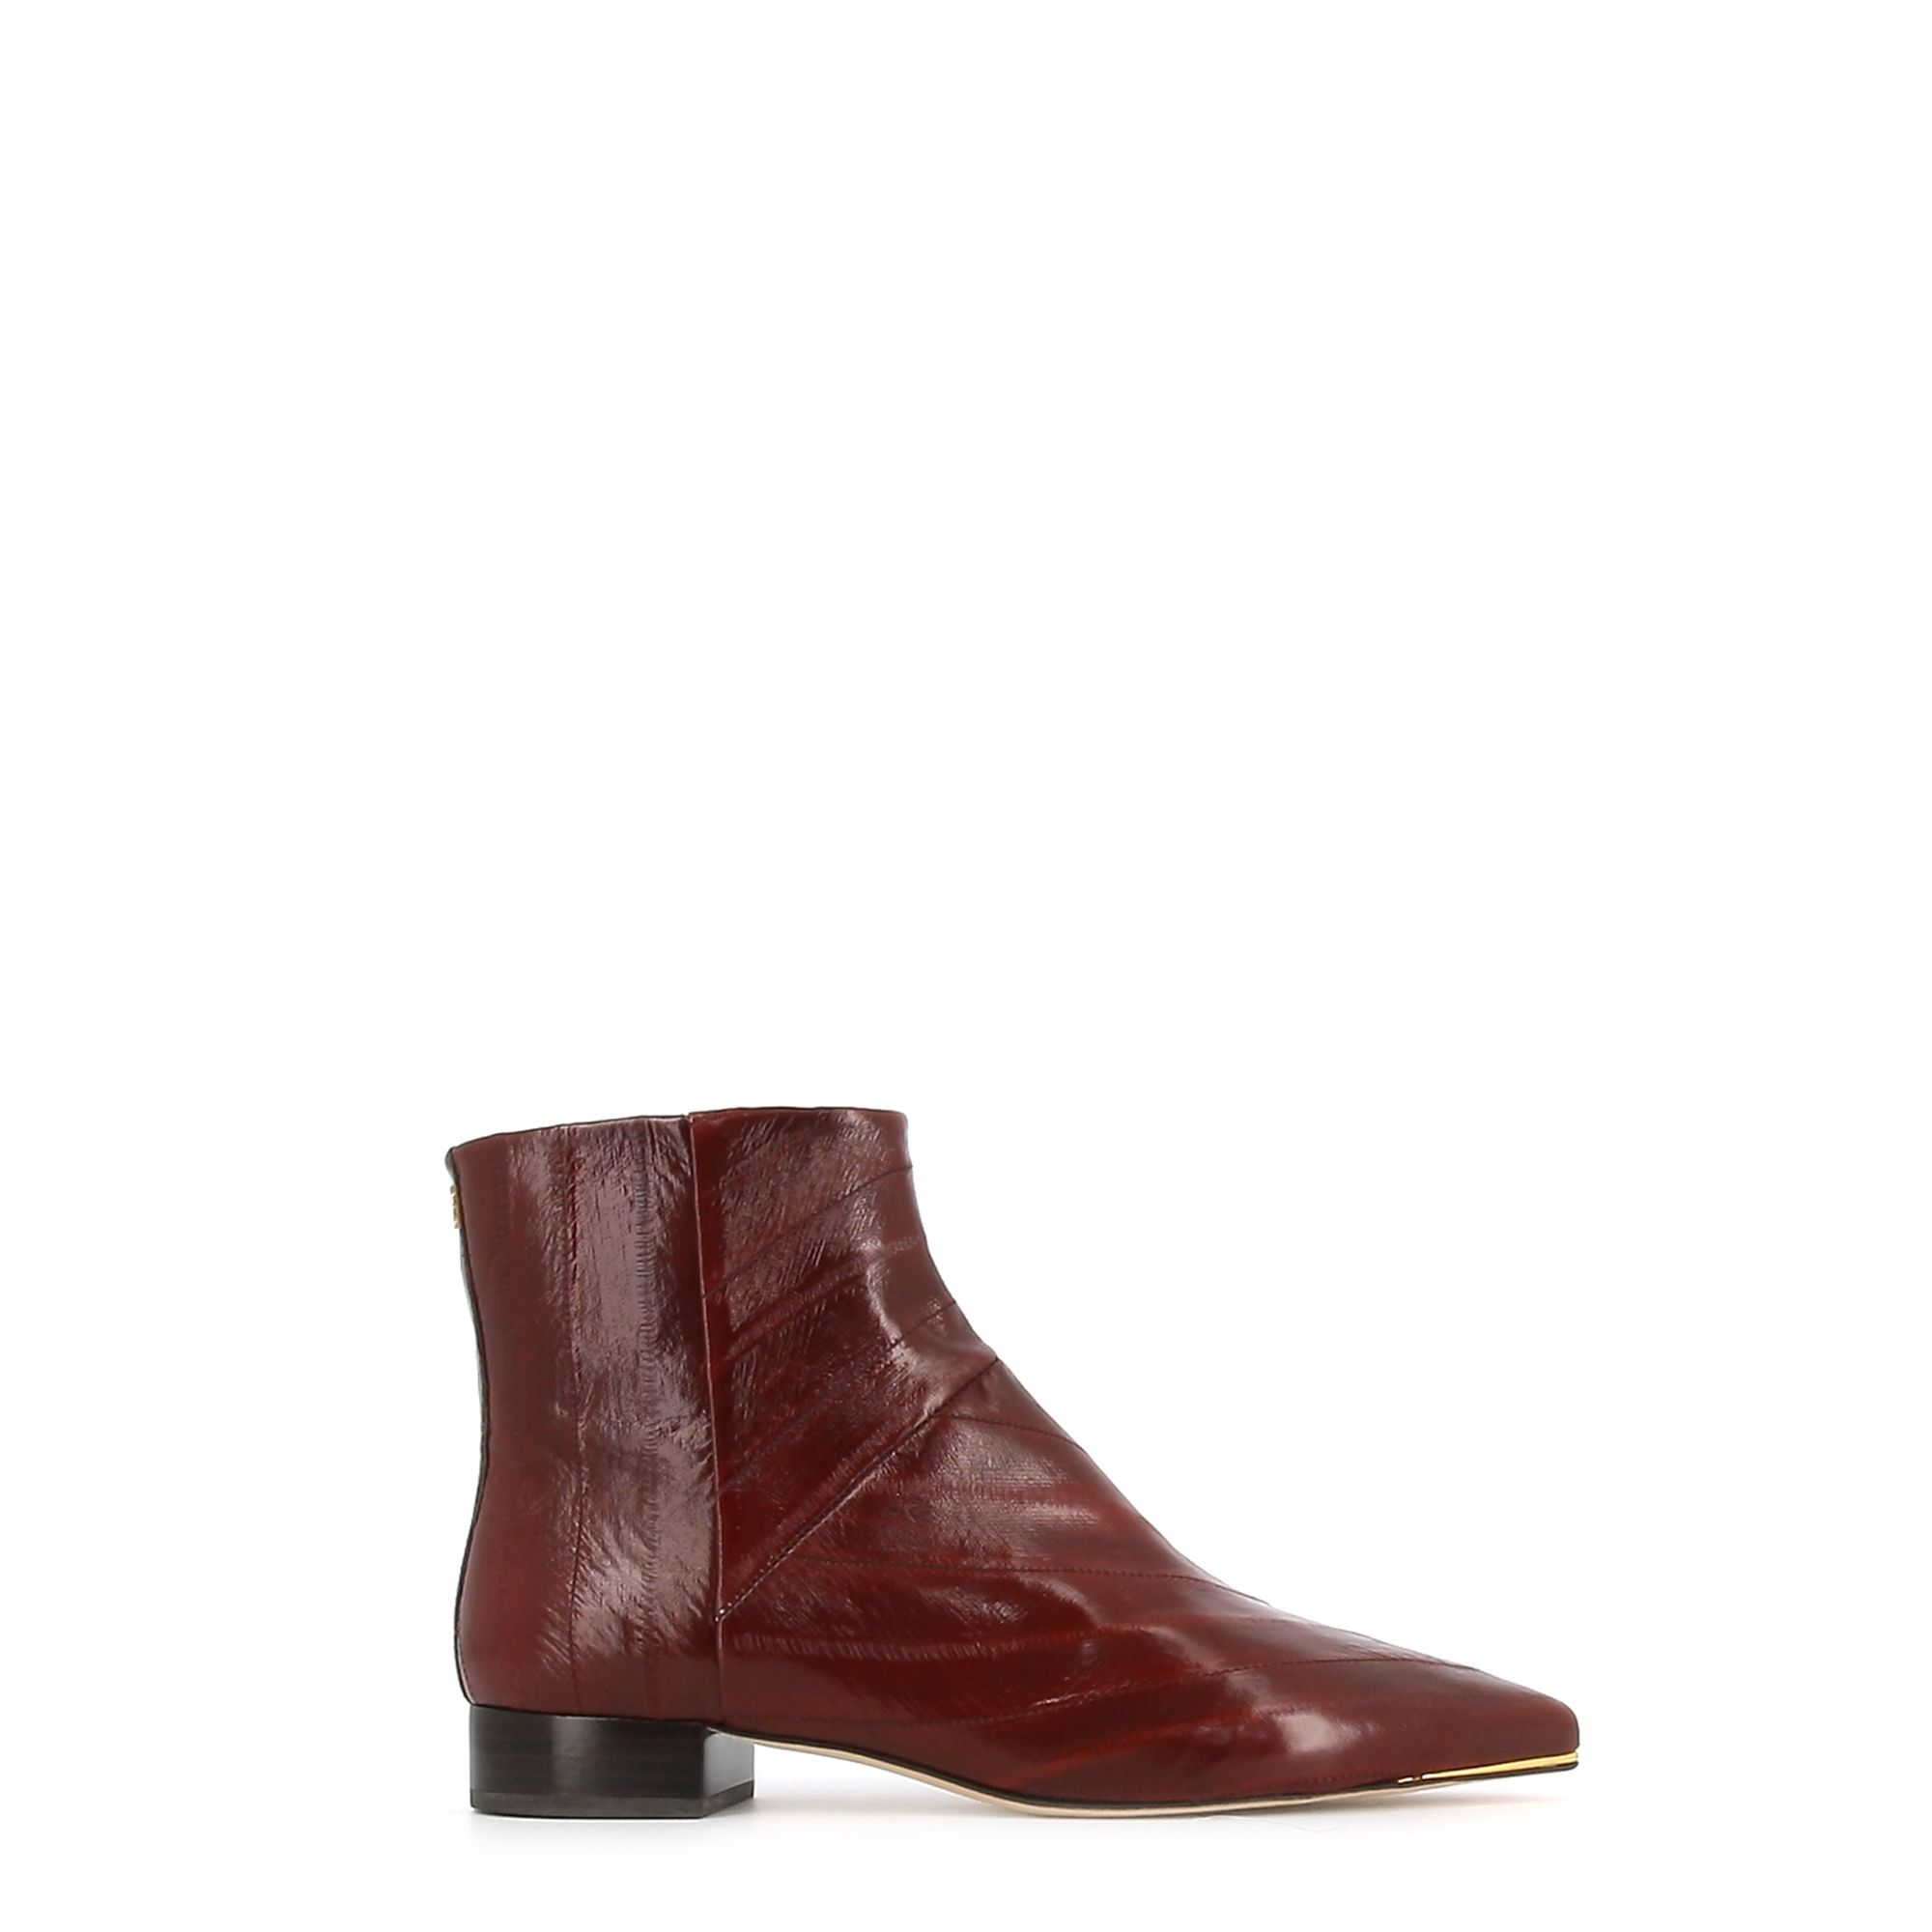 Tory Burch TORY BURCH WOMEN'S BURGUNDY LEATHER ANKLE BOOTS